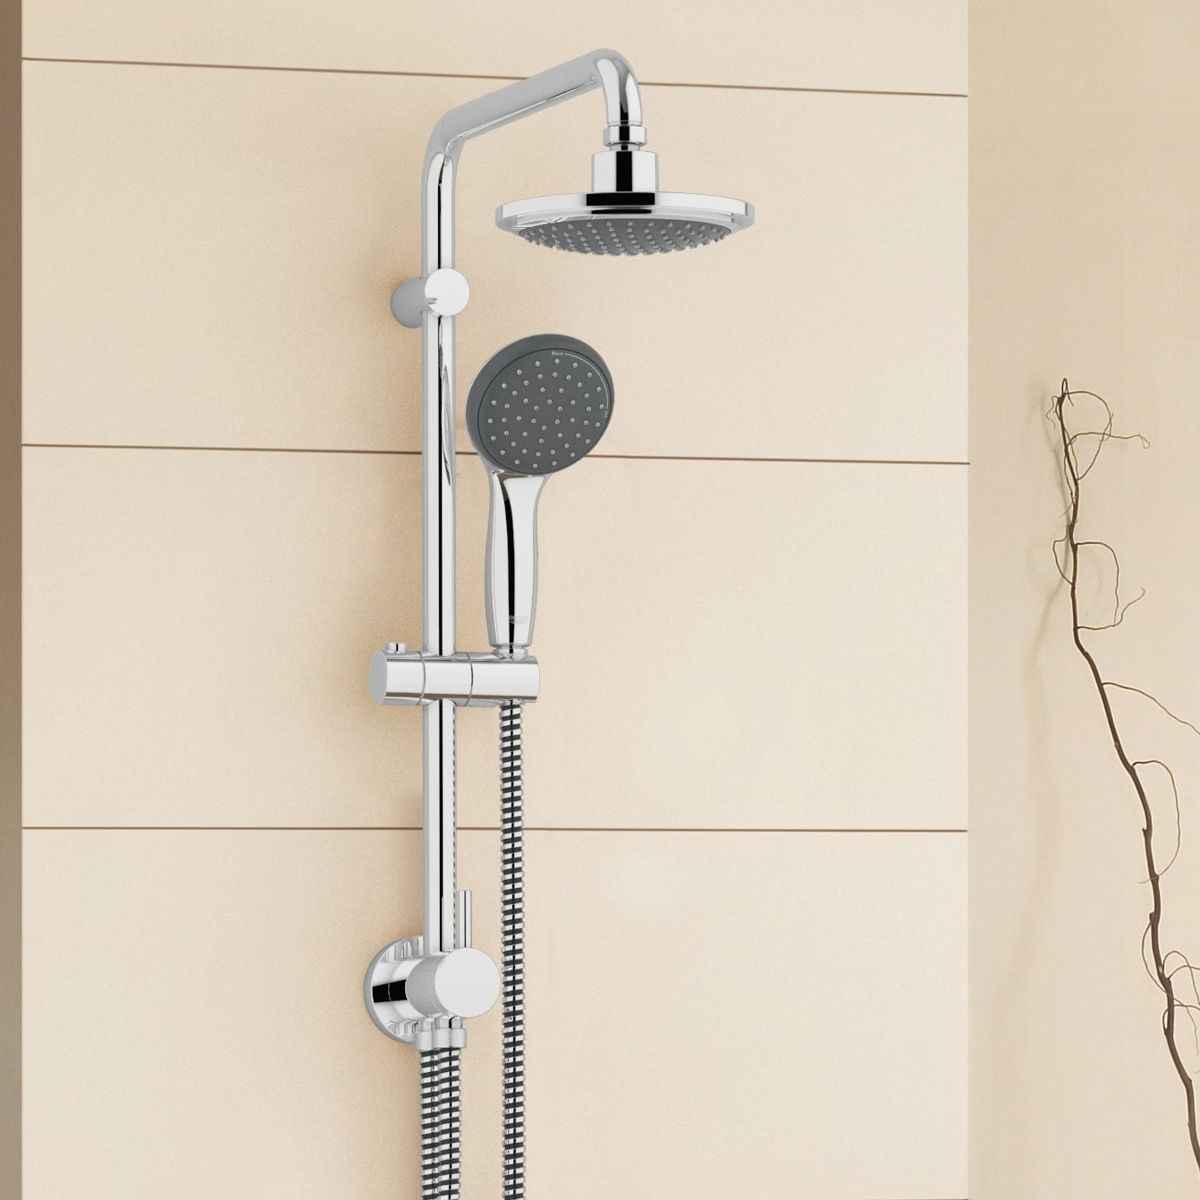 Grohe Euphoria Douchesysteem 180 Chroom Grohe Vitalio Start Douchesysteem Regendouche ø 16 Cm Met Omstelling Chroom